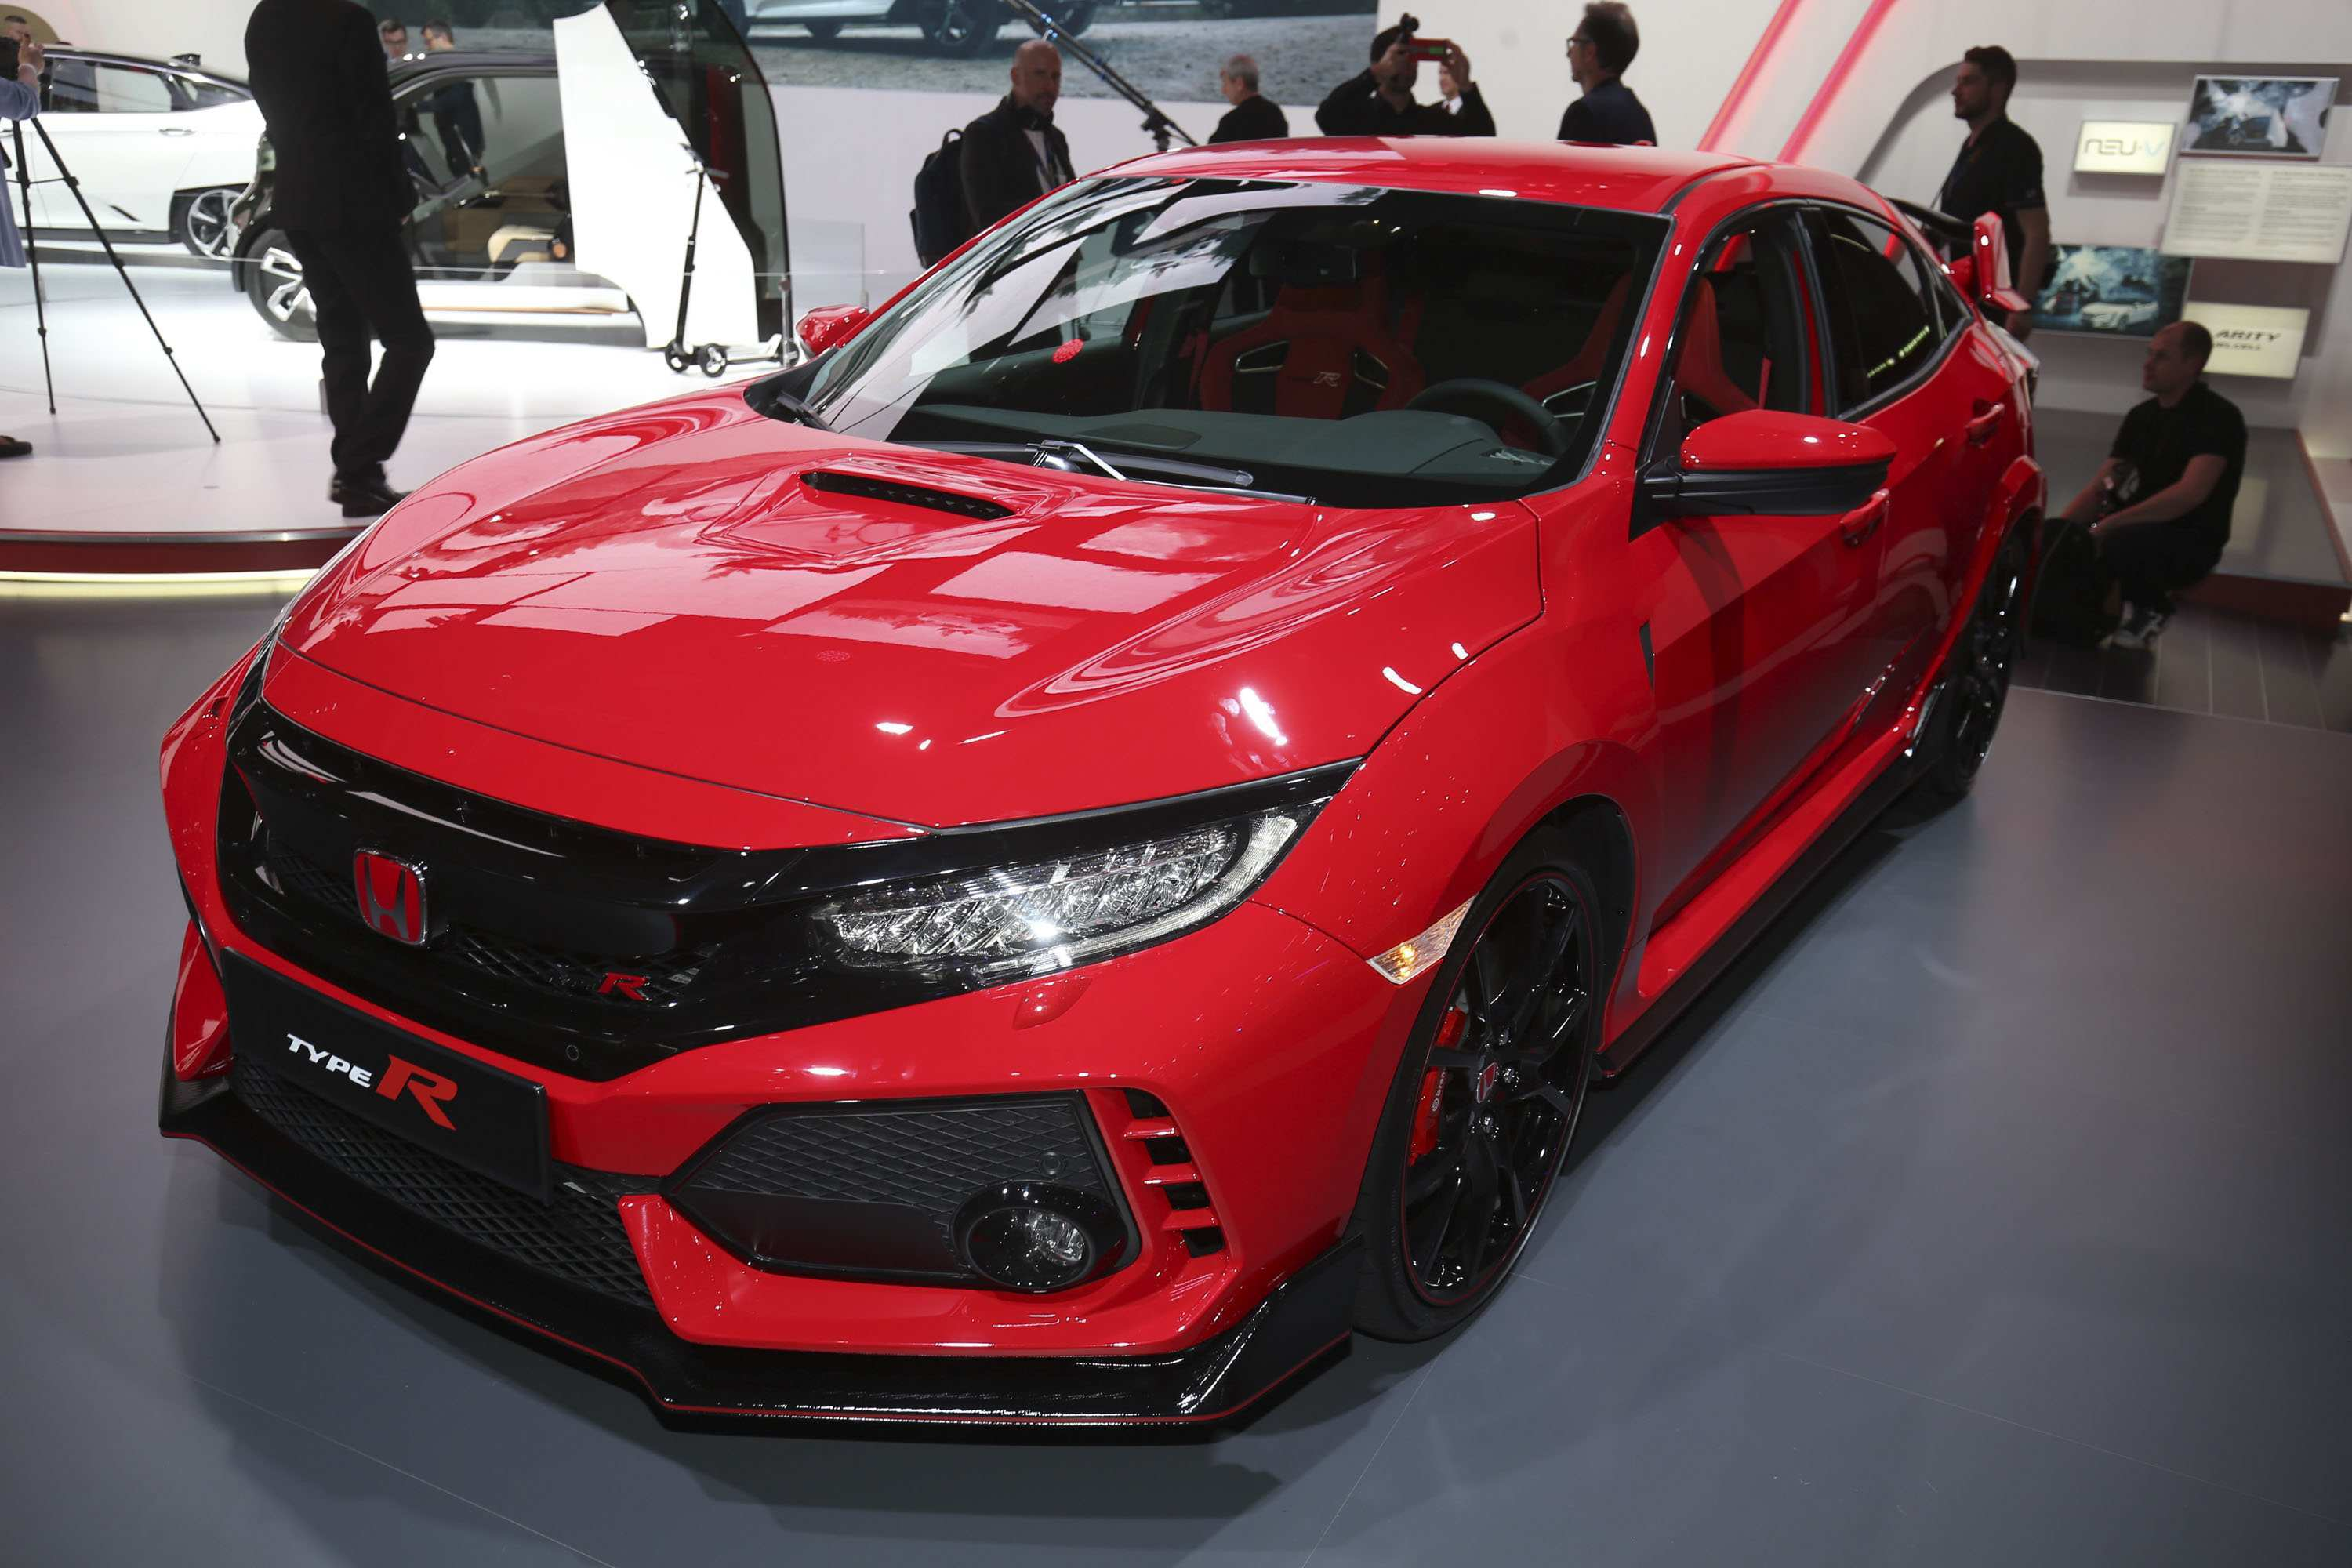 43 Concept of 2020 Honda Accord Type R Interior for 2020 Honda Accord Type R